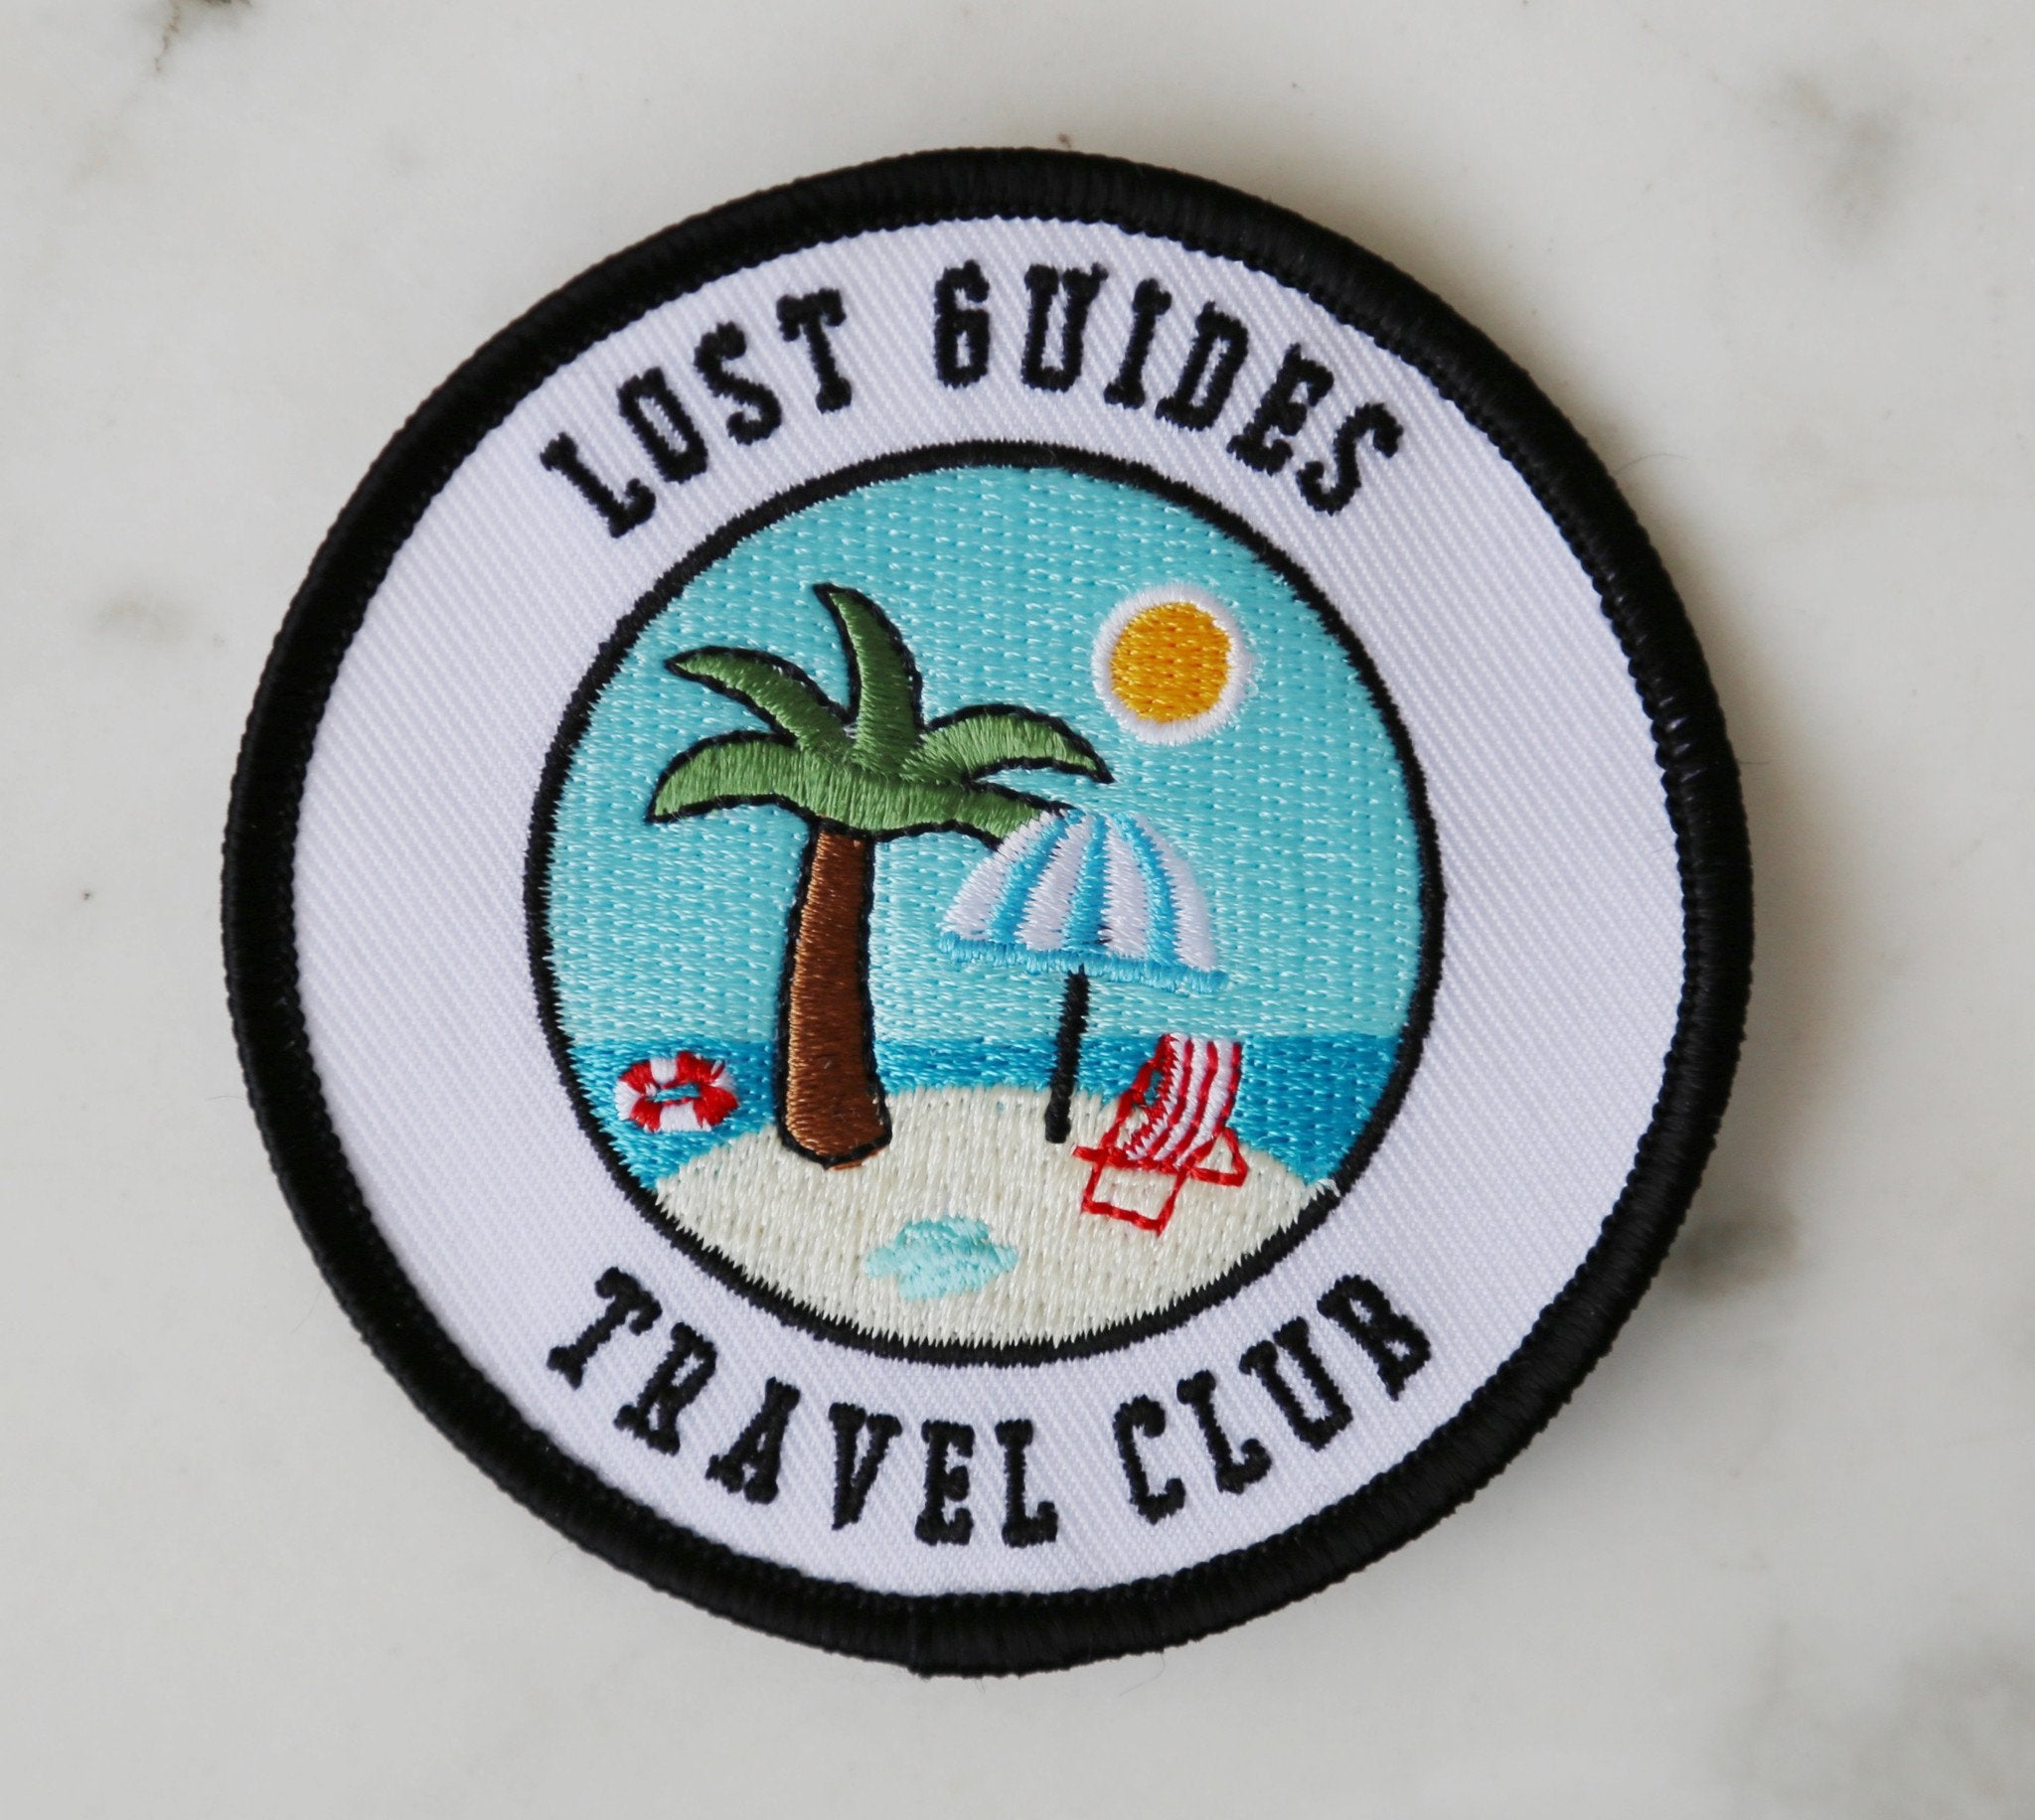 Lost Guides Travel Club patch